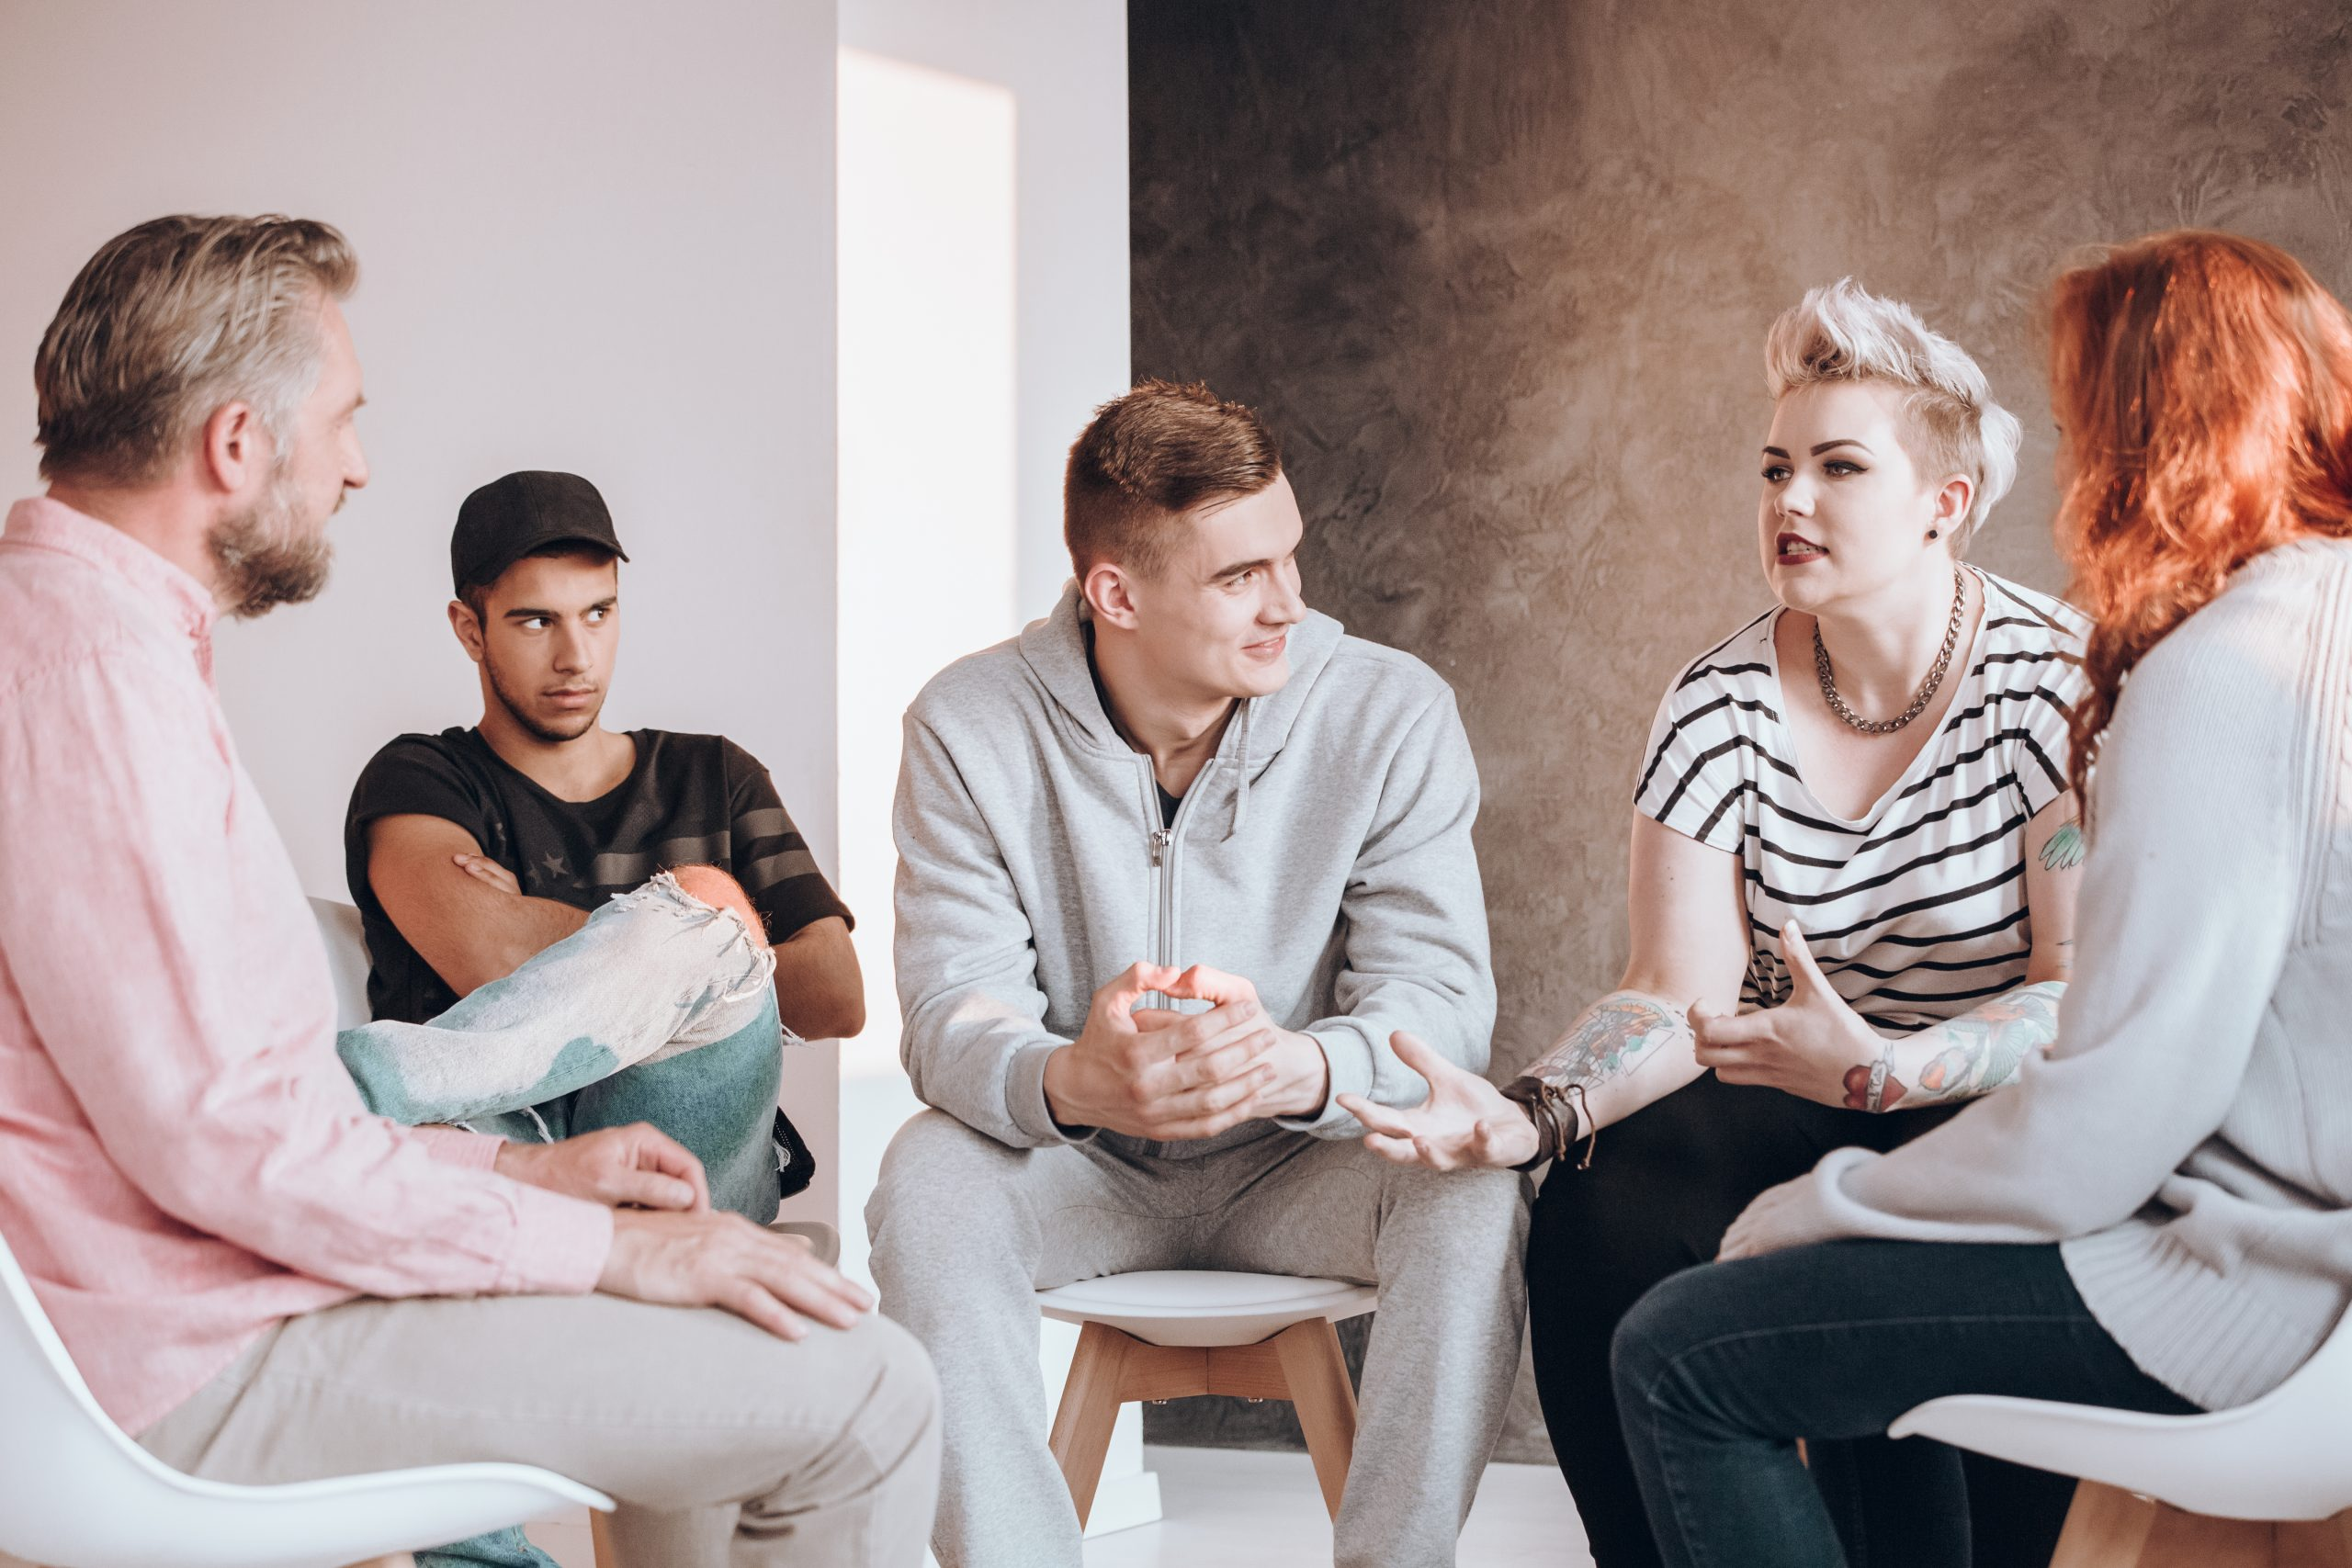 A woman expressing her opinion to a group of 3 other men and another woman. They all look quite engaged.